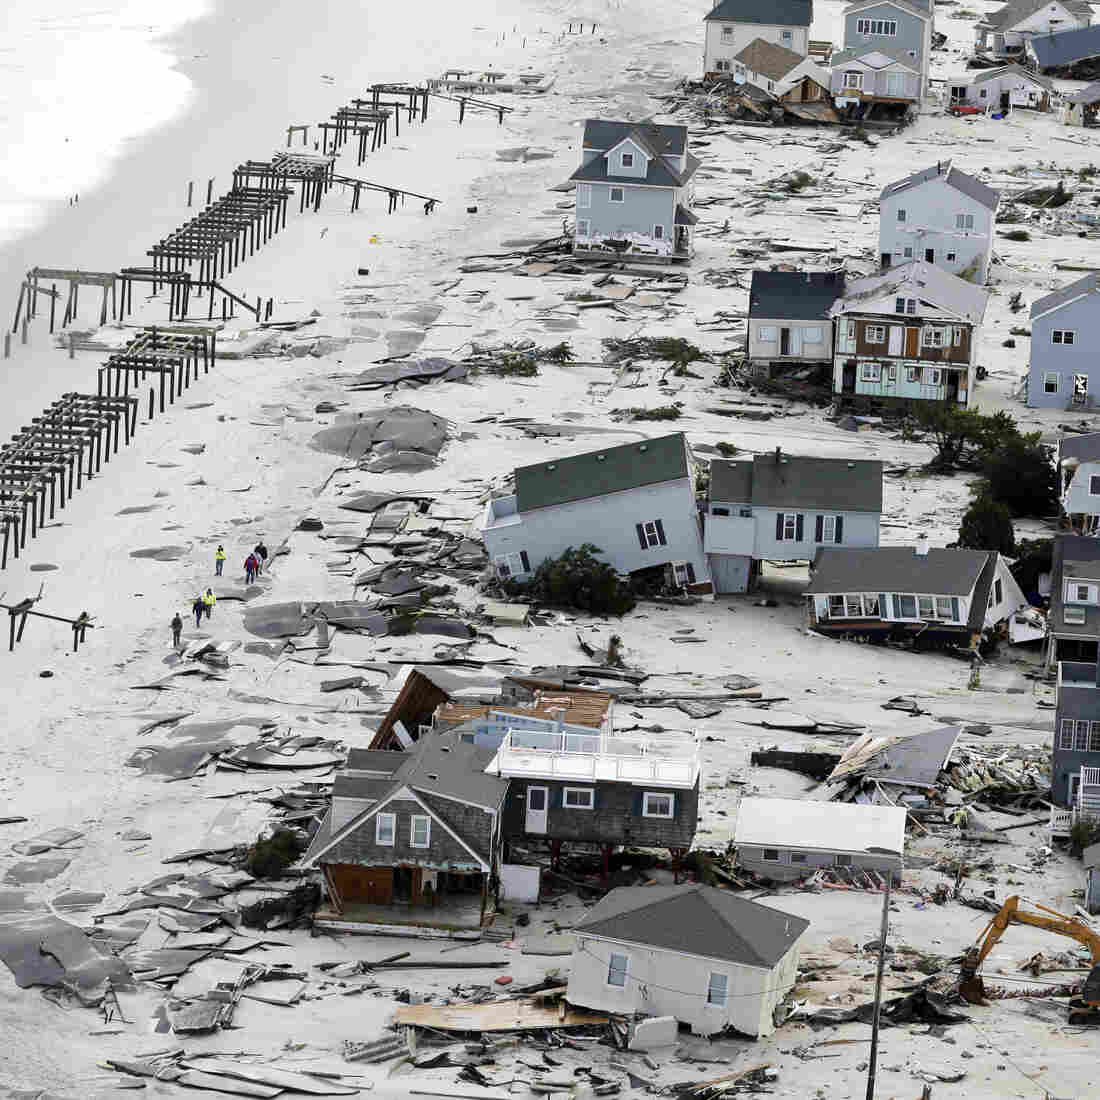 Insurance Companies Rethink Business After Sandy